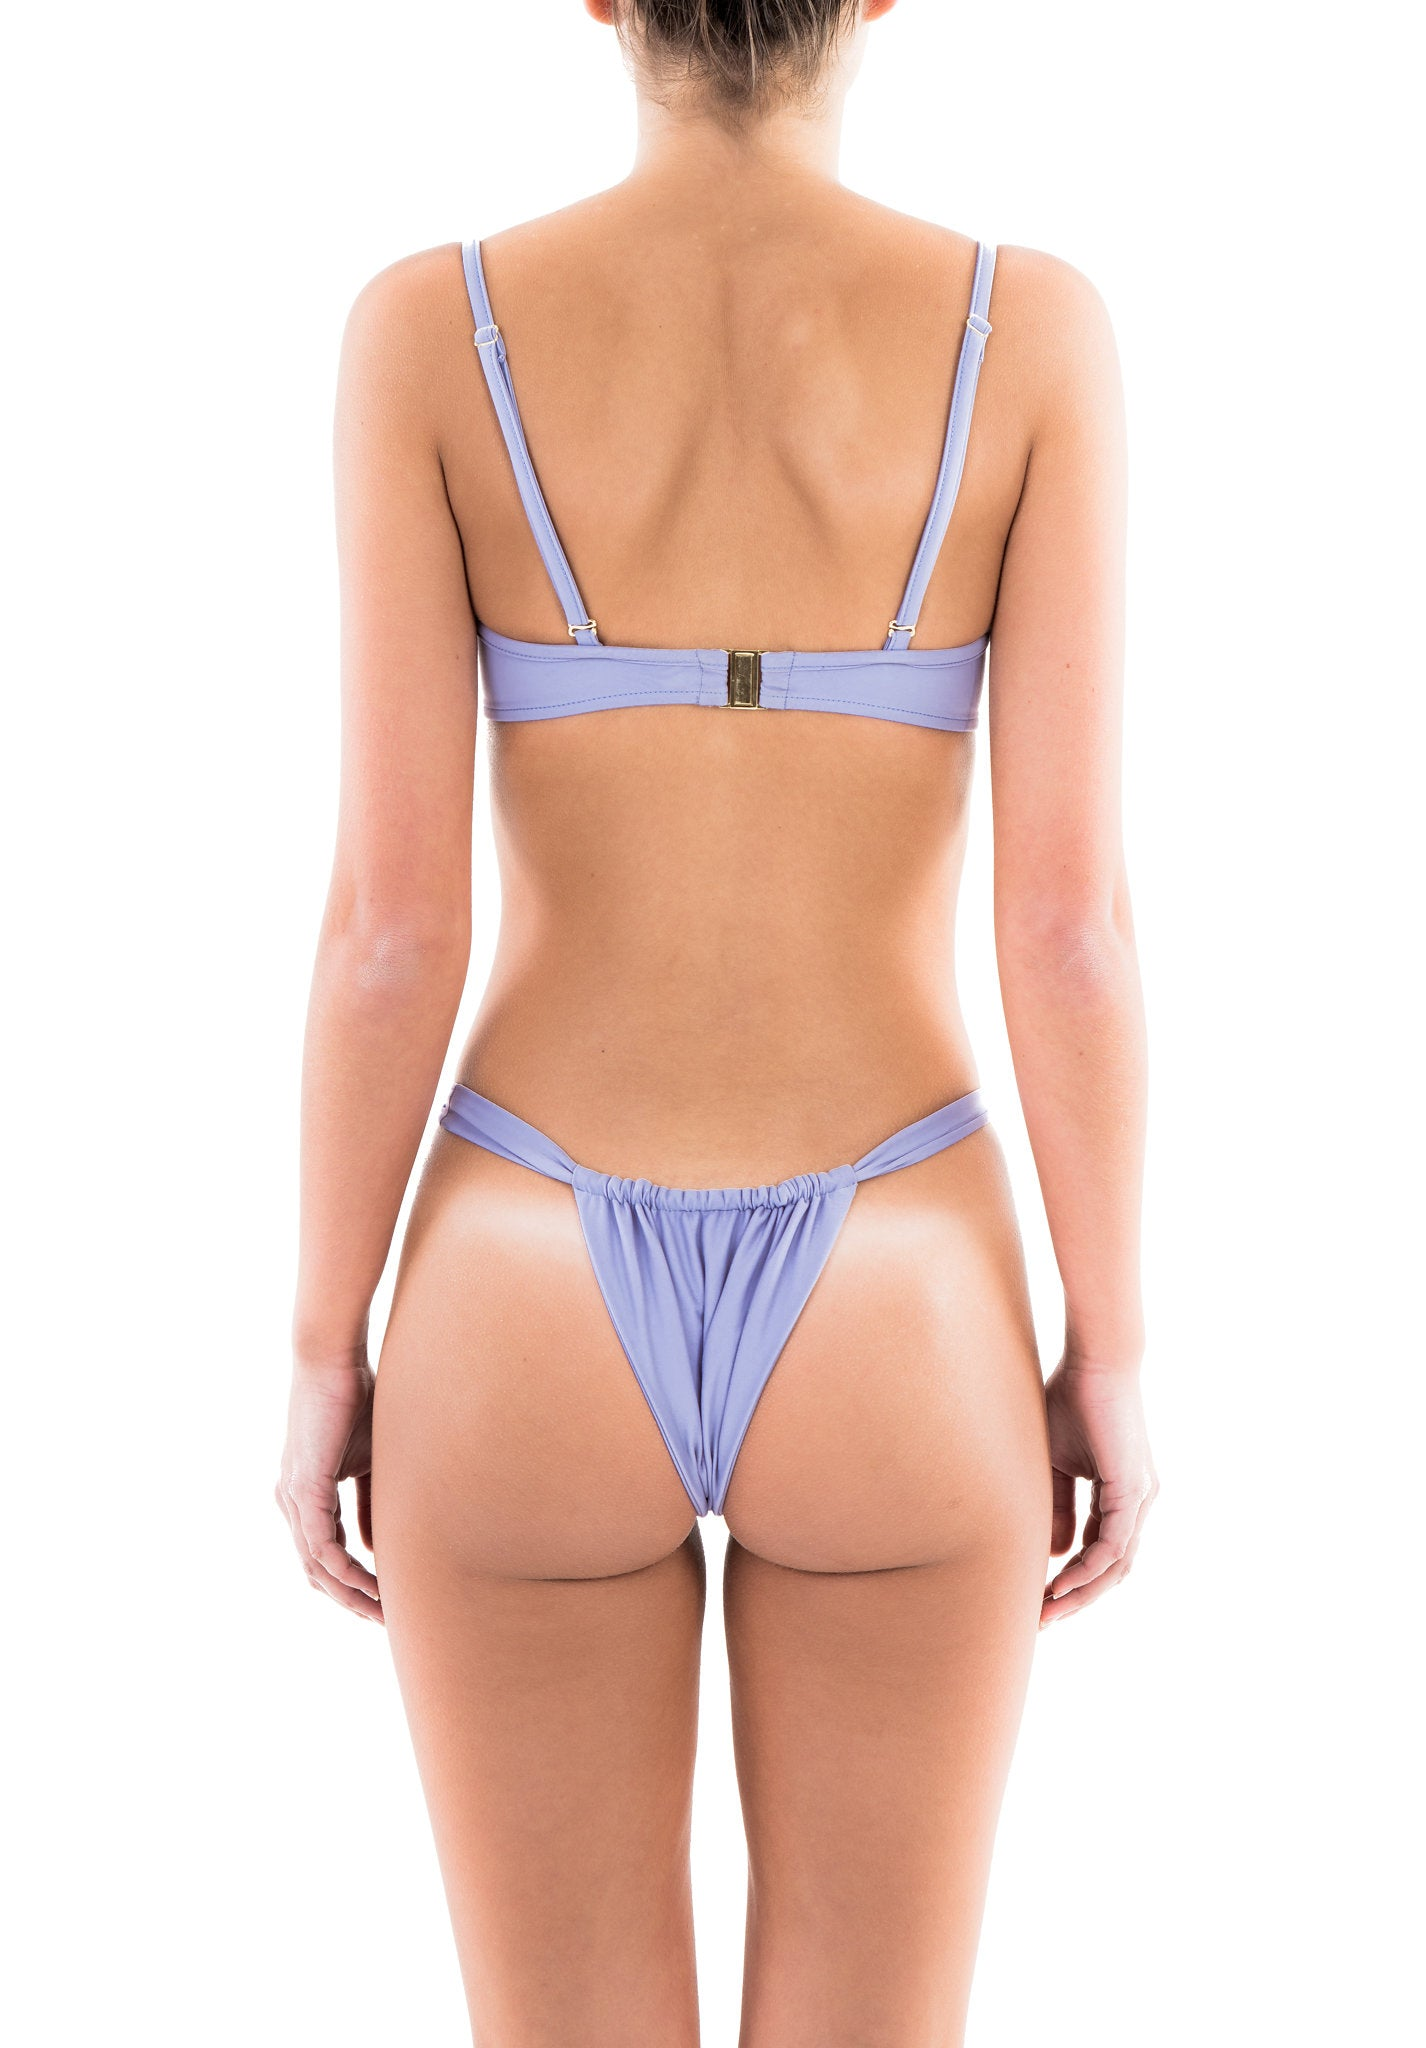 AMORE bottoms - lavender